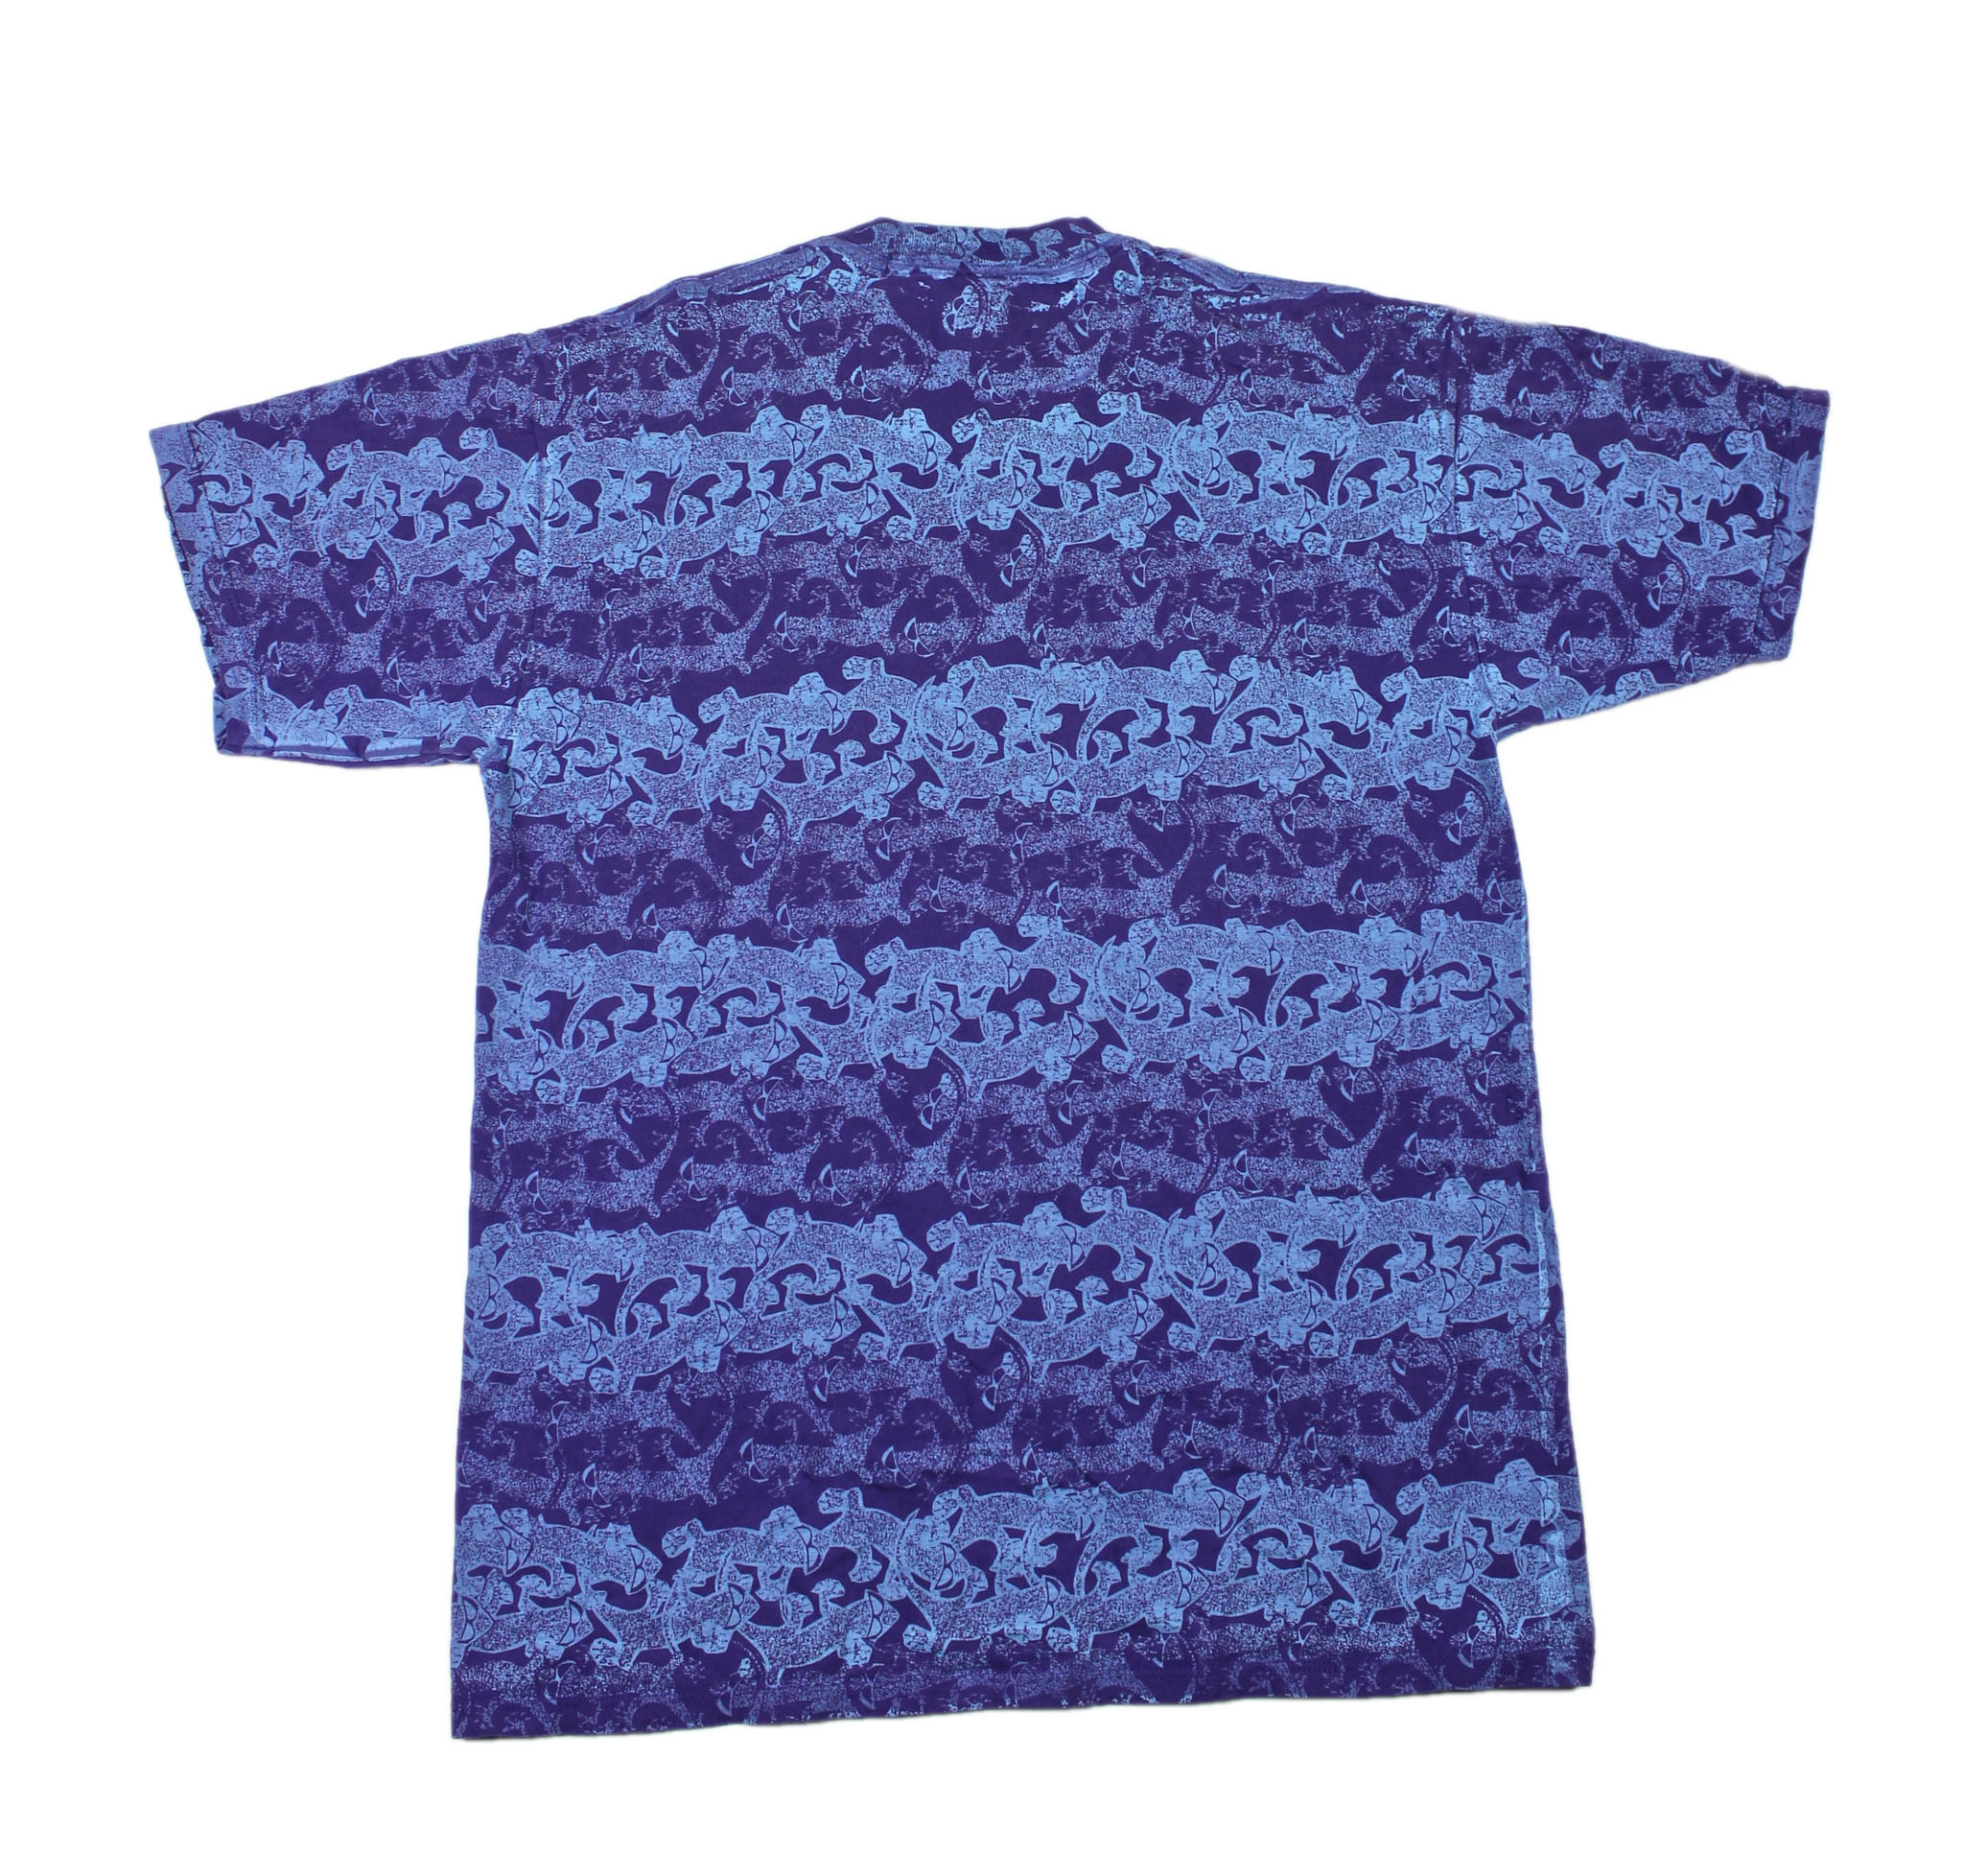 90s Pattern Shirts Awesome Decorating Ideas